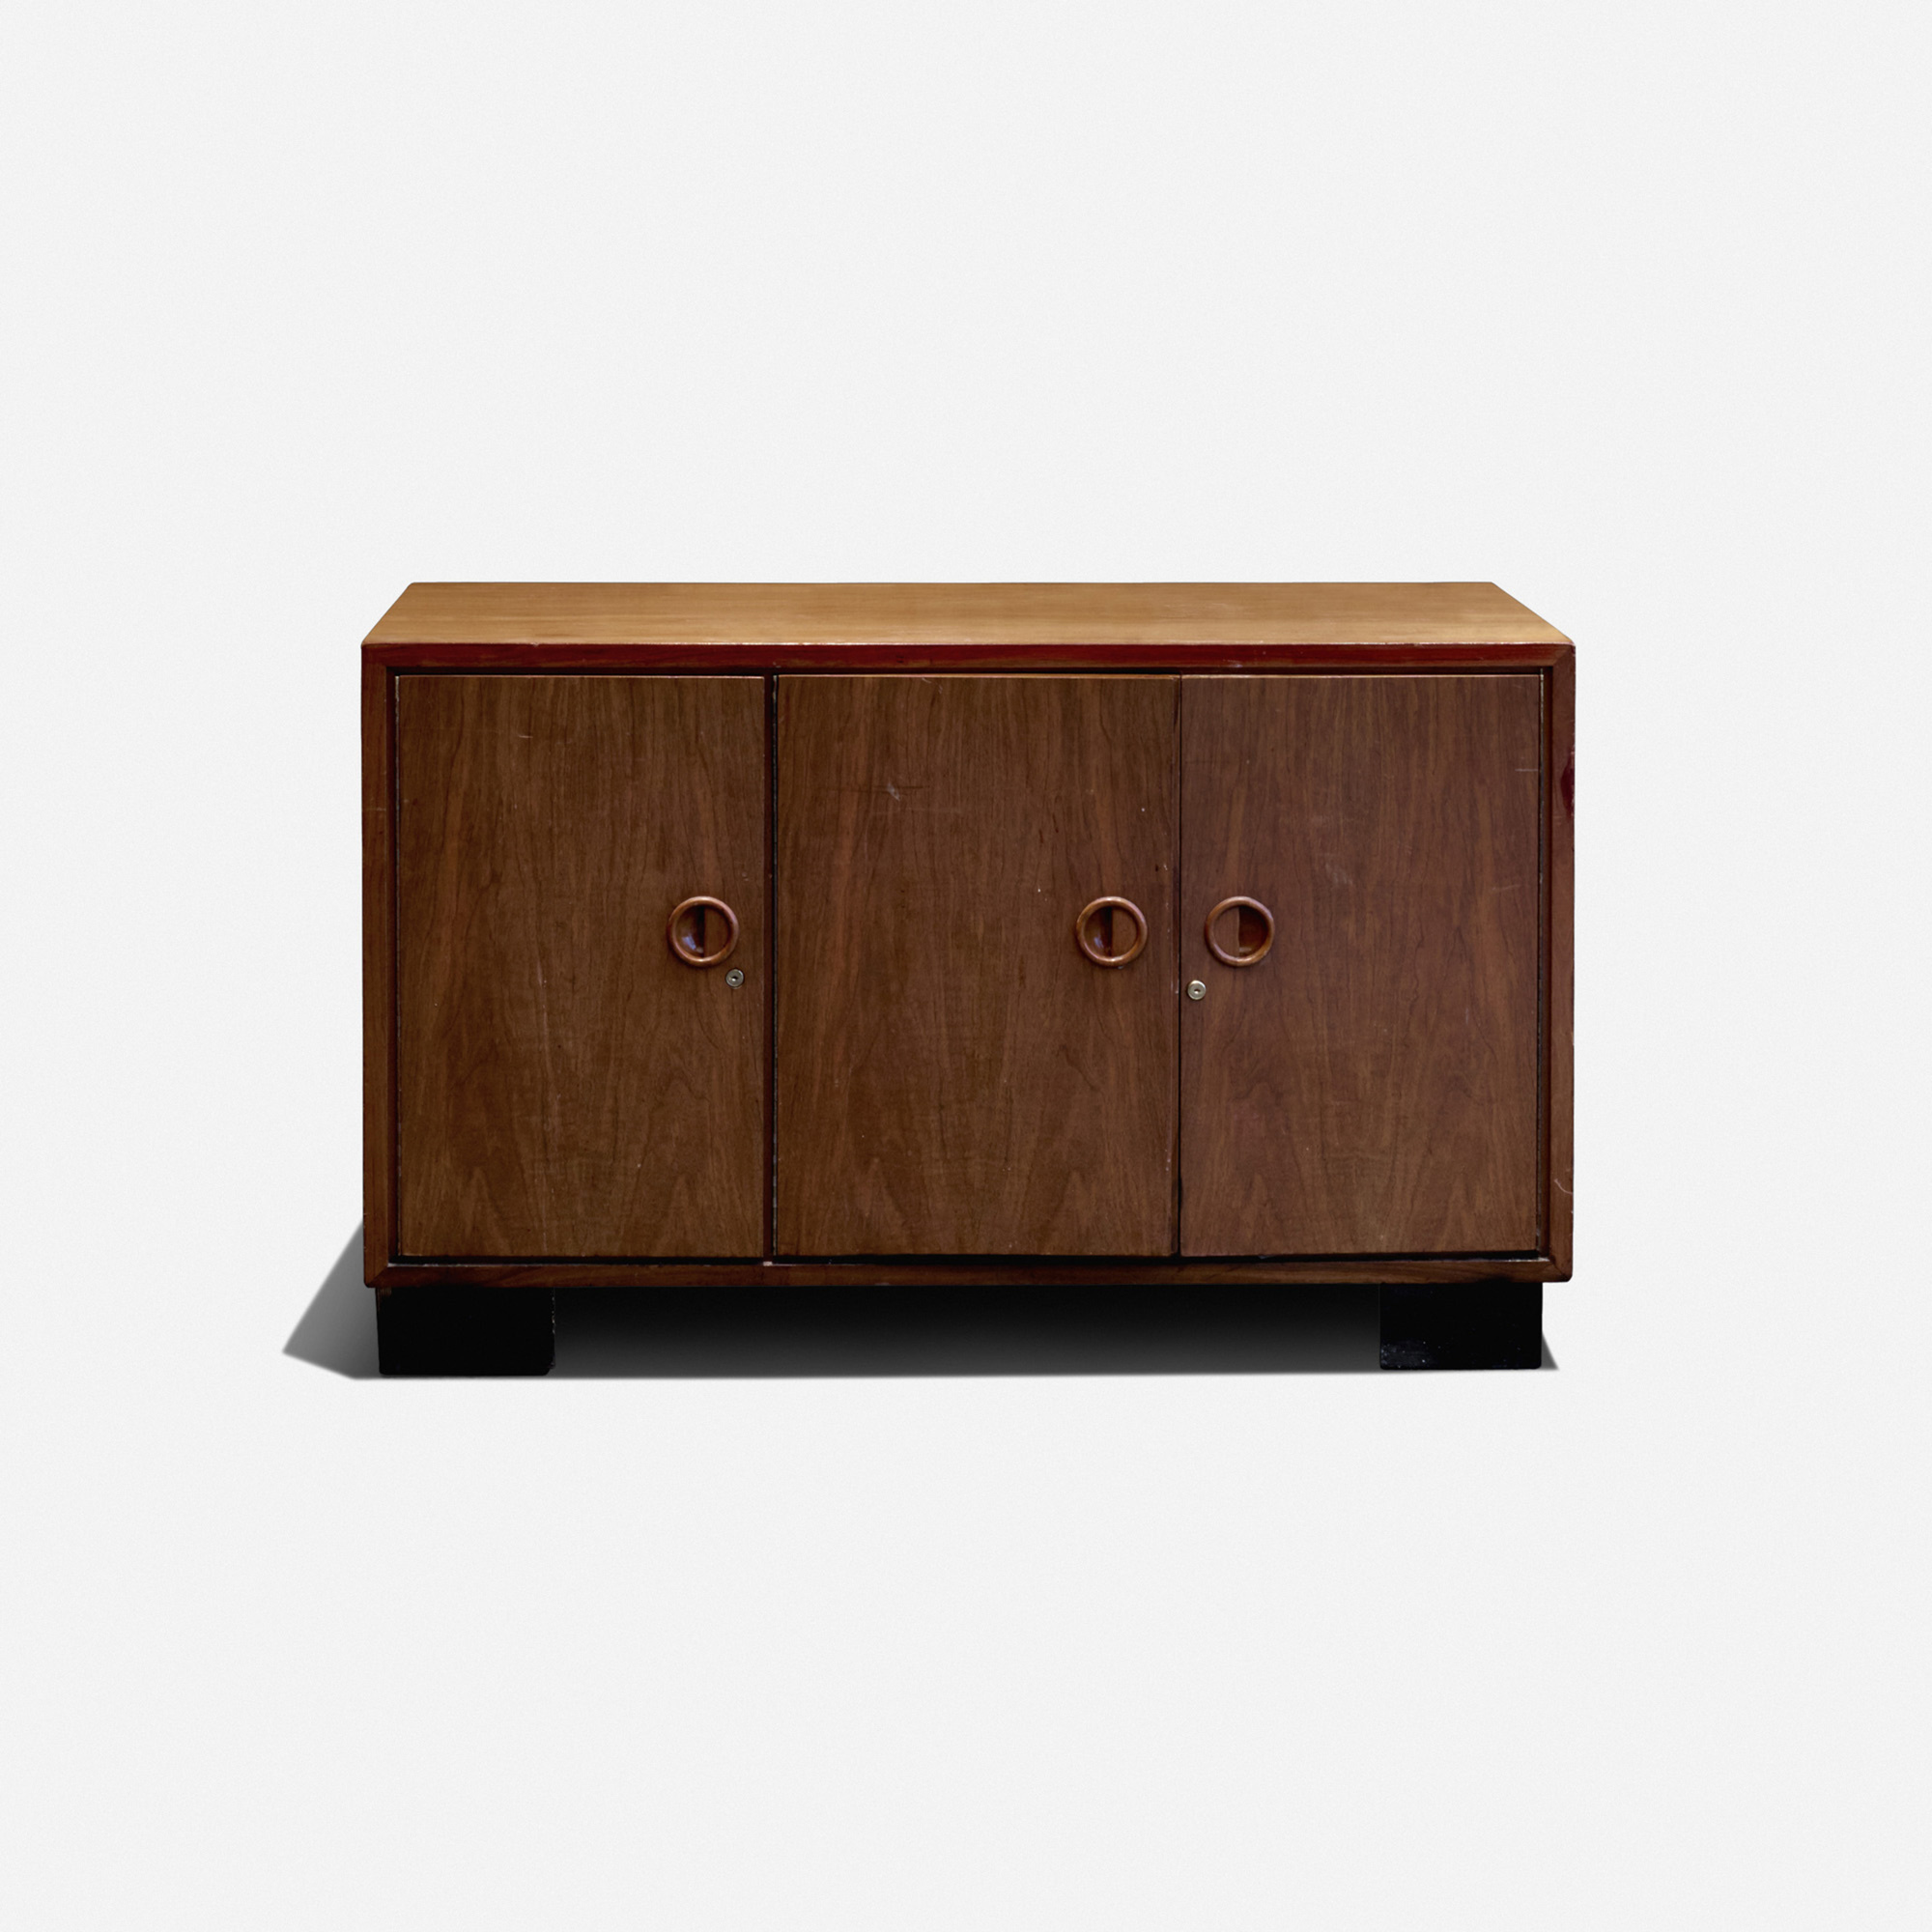 803: Philip Johnson Associates / Serving cabinet from the Private Dining Room no. 3 (1 of 1)